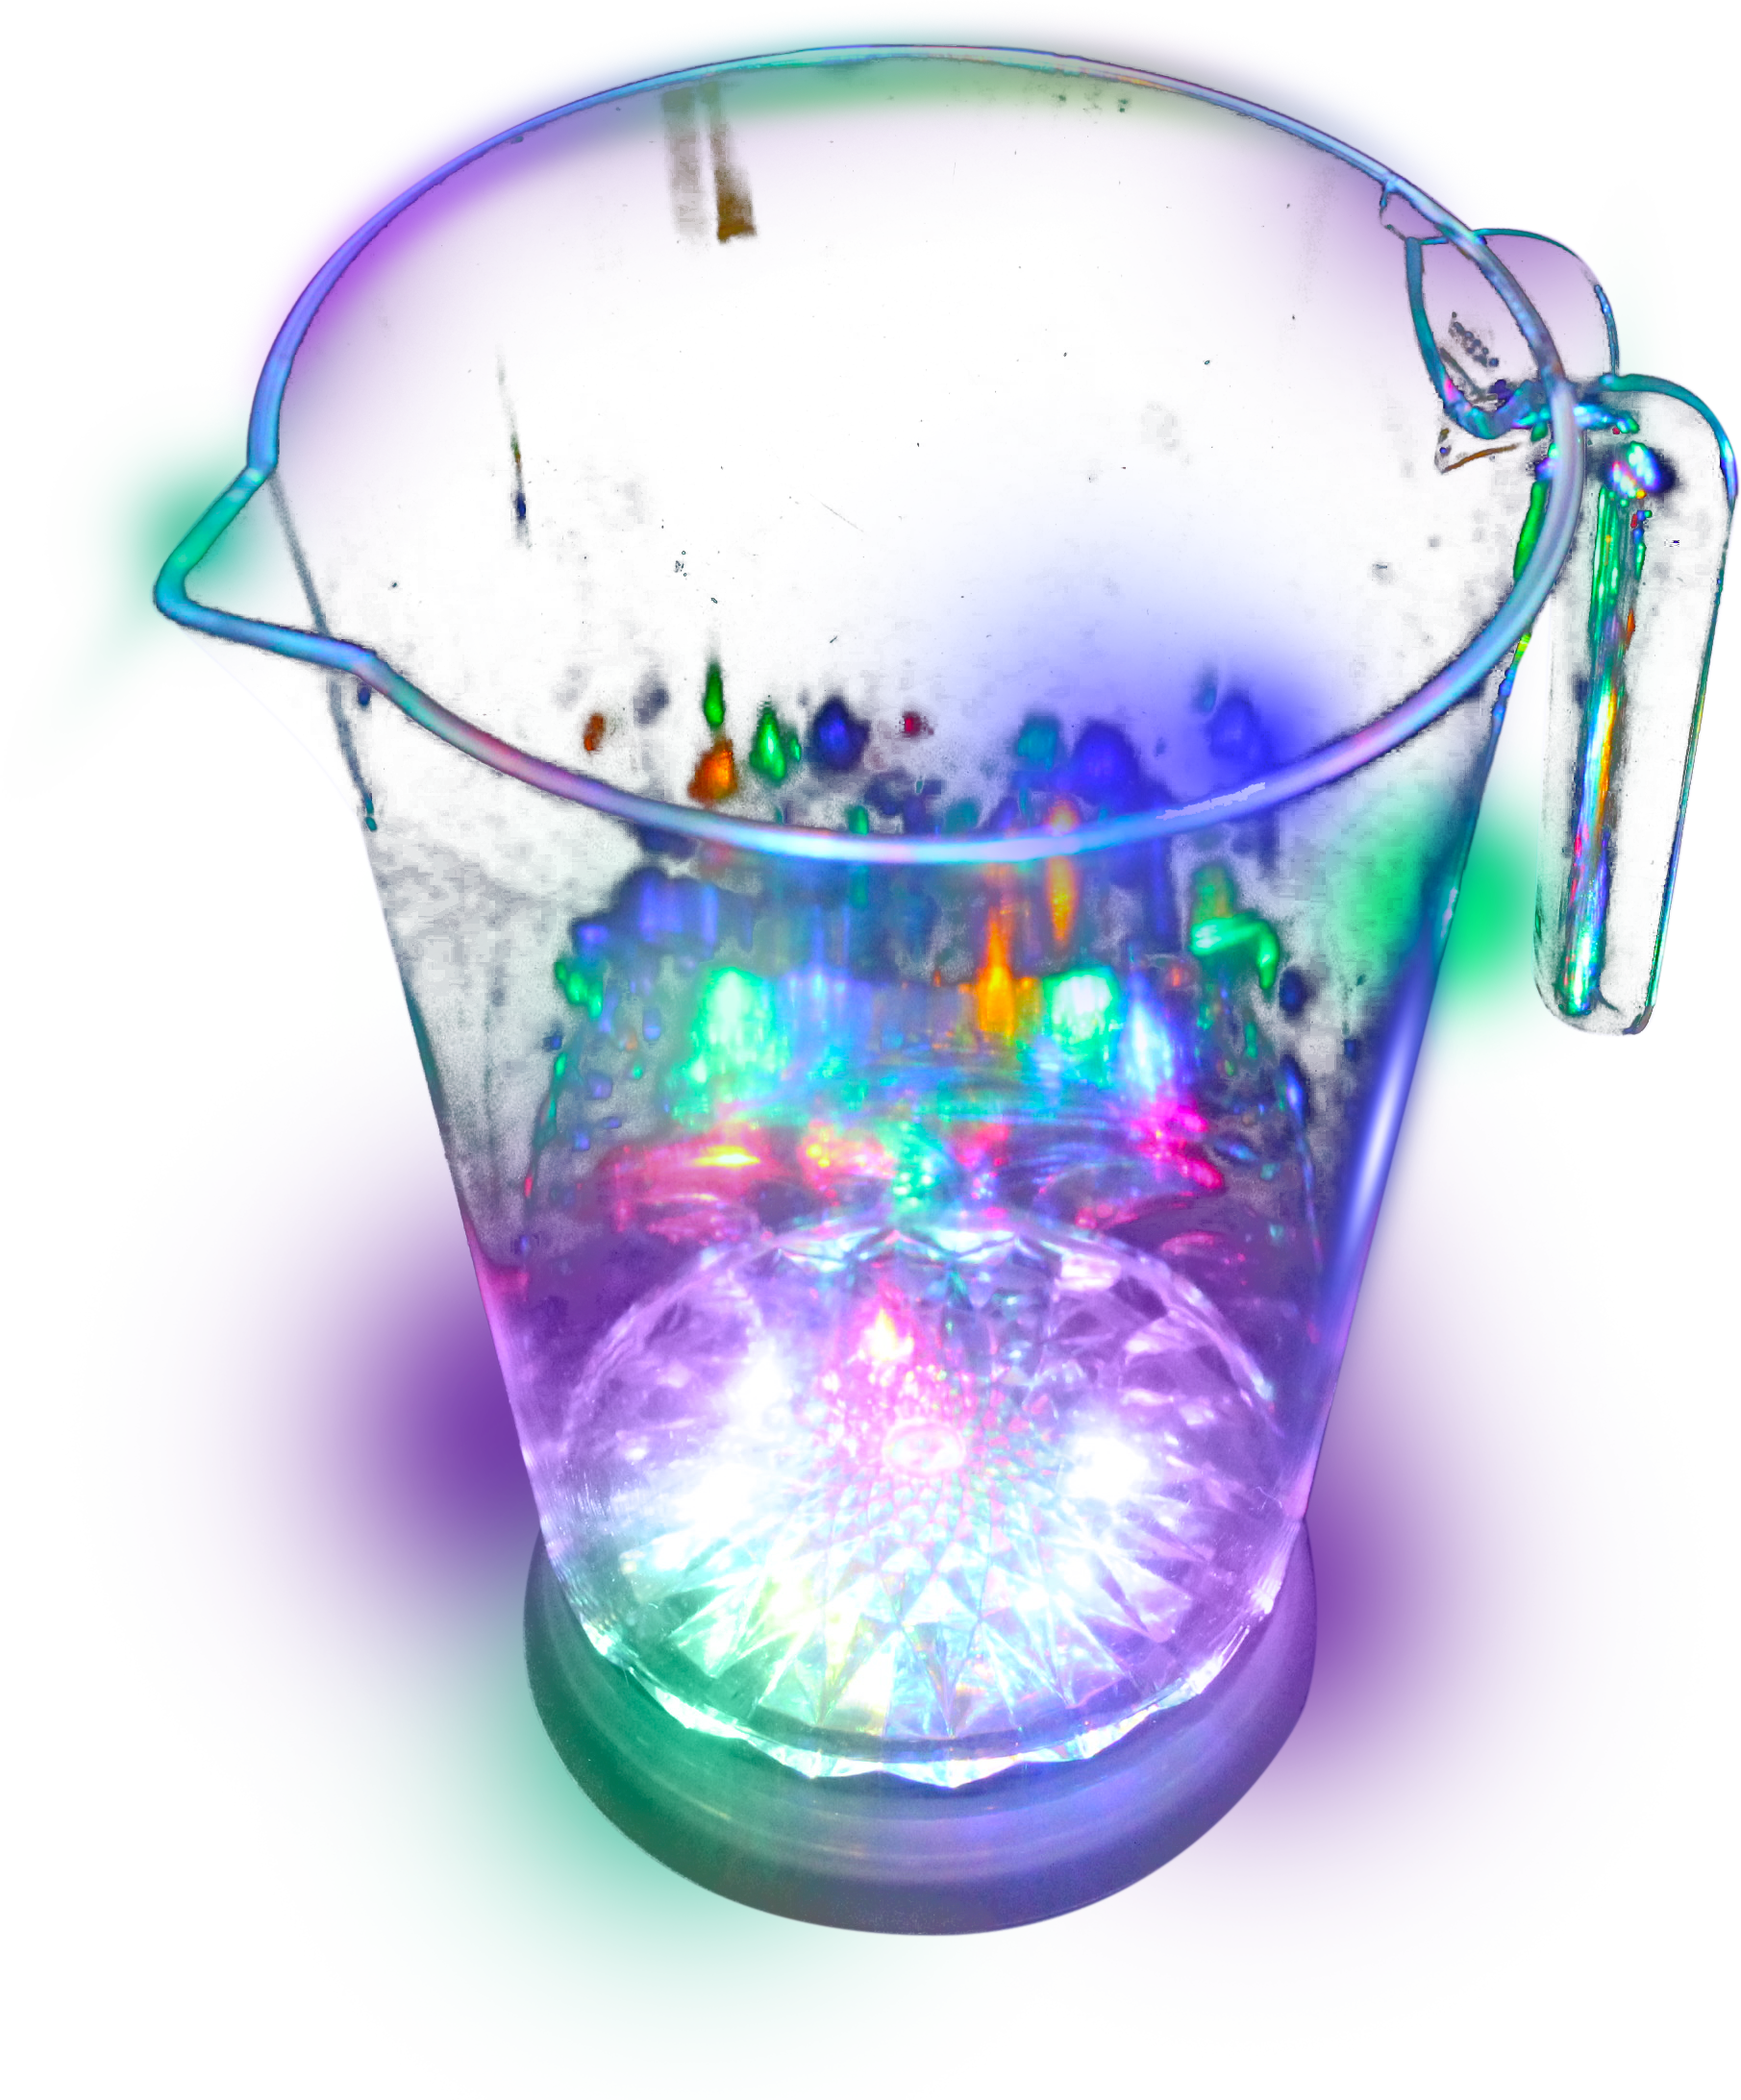 Fun Central P906 LED Light Up Serving Pitcher - 48 oz.